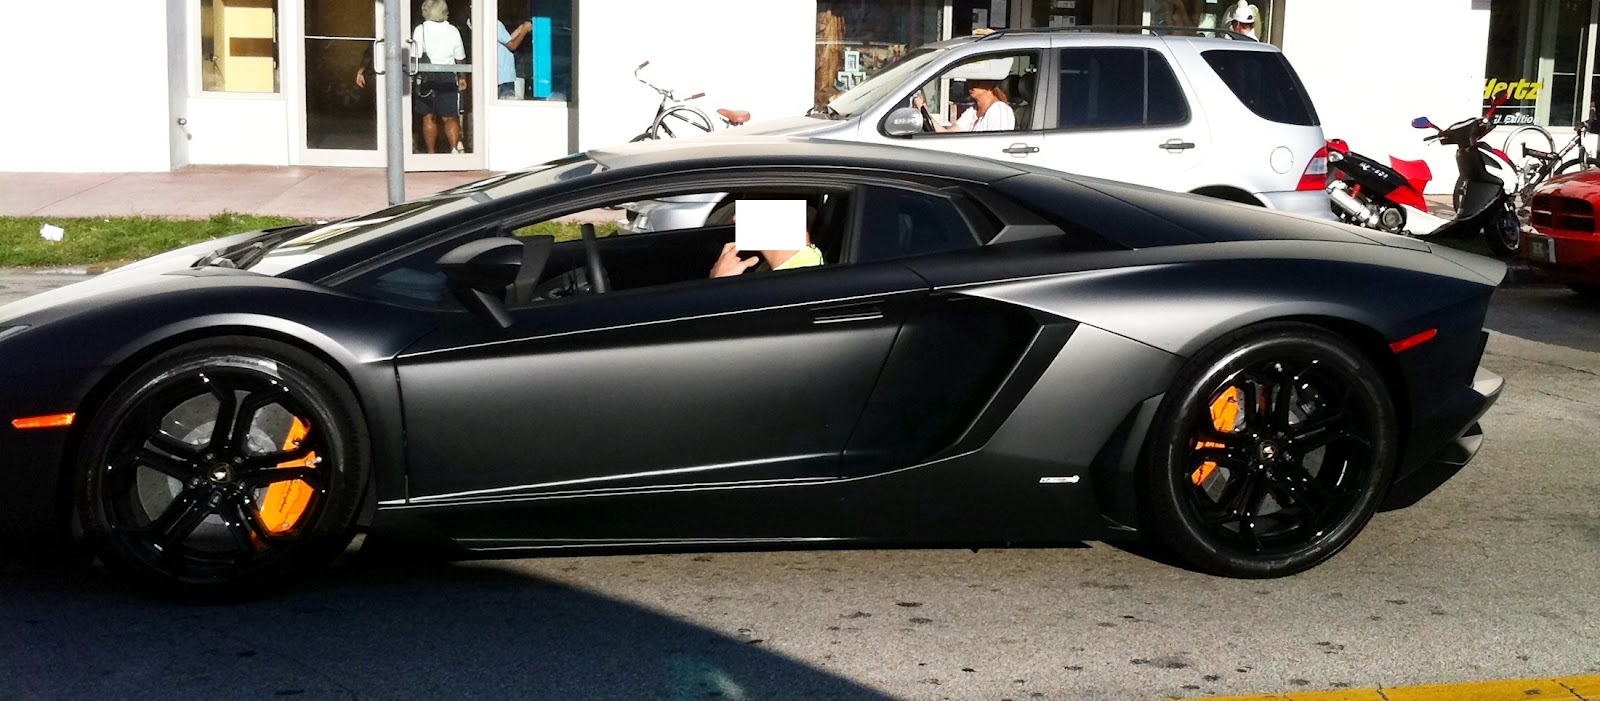 Matte Black Lamborghini Aventador - in Miami Beach ...